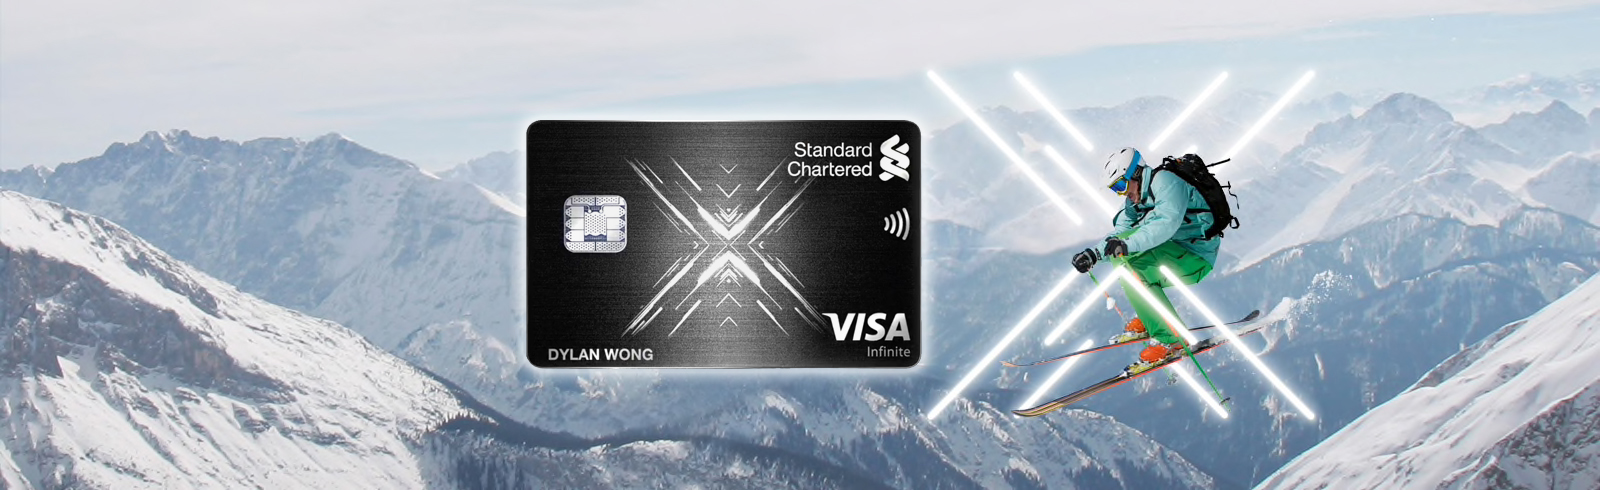 New 60,000 miles sign-up bonus for the Standard Chartered X Card